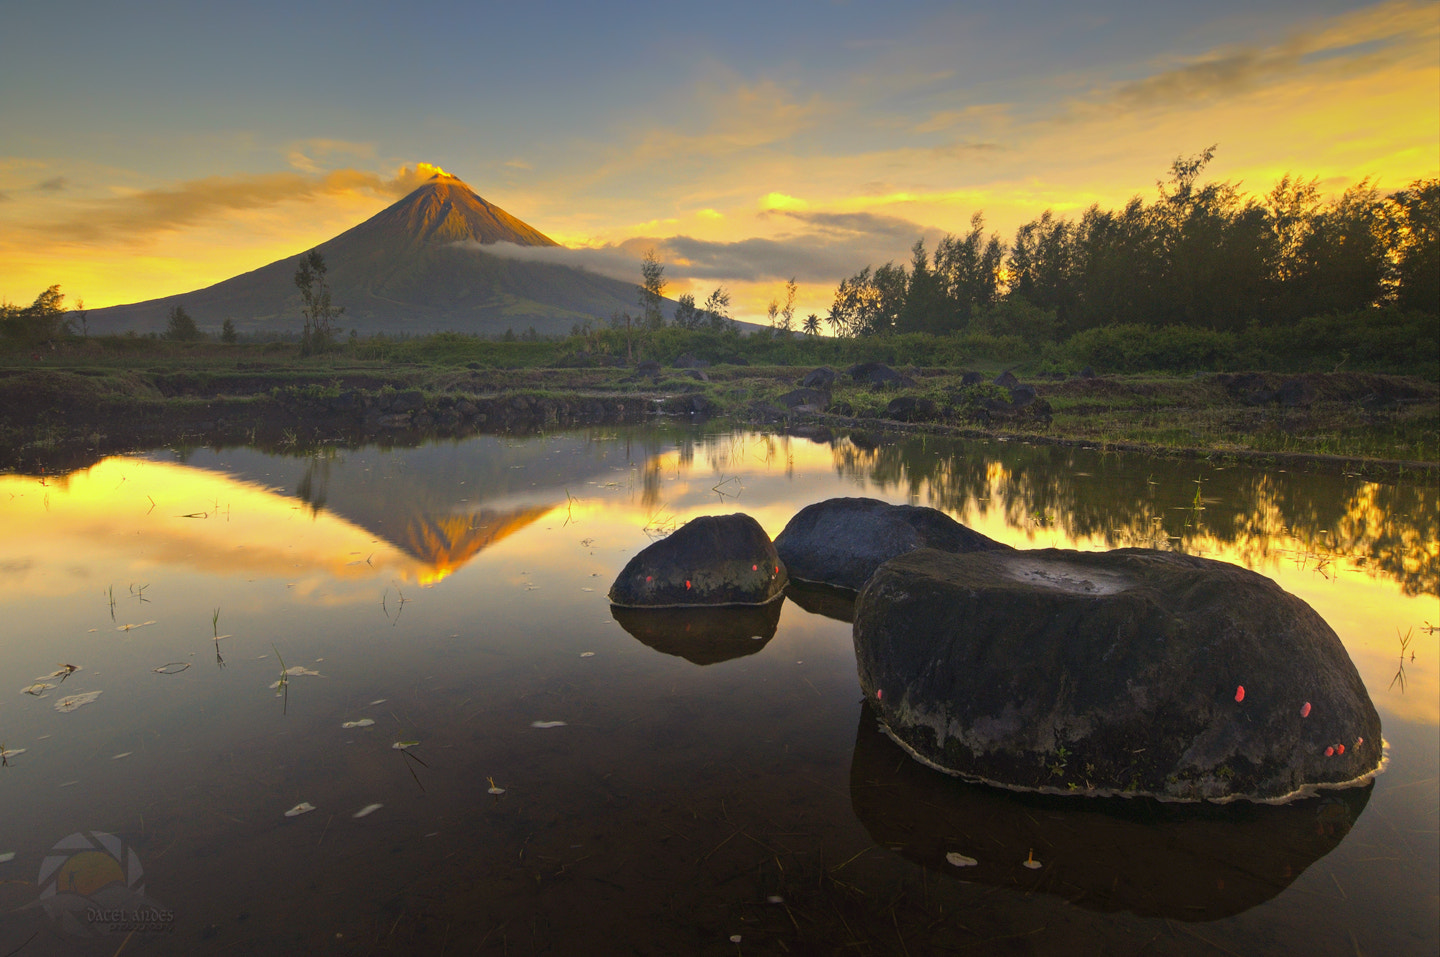 Photograph Fiery Reflection by Dacel Andes on 500px